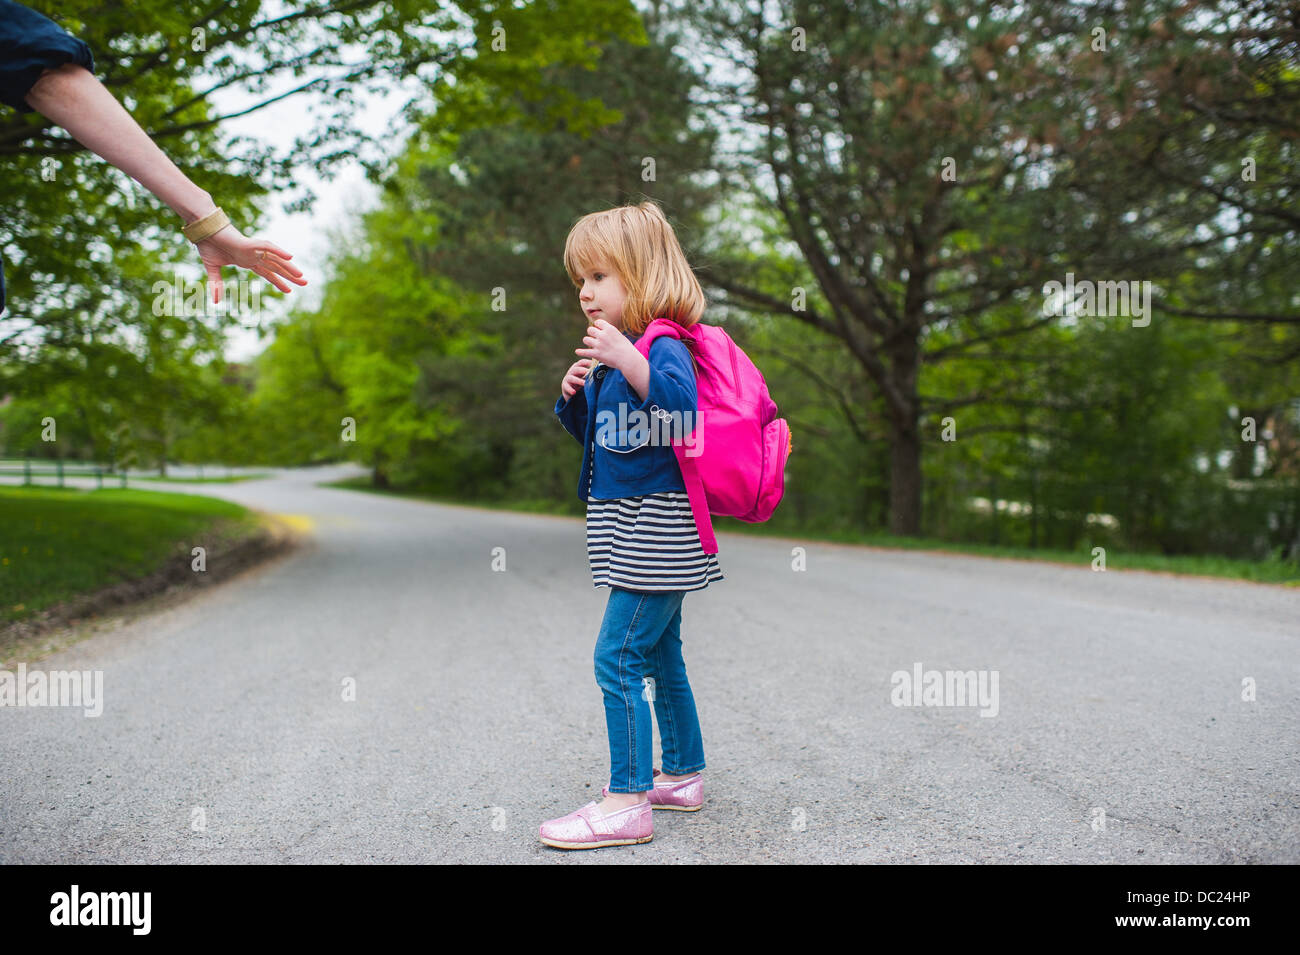 Mother reaching out to hold daughter's hand - Stock Image